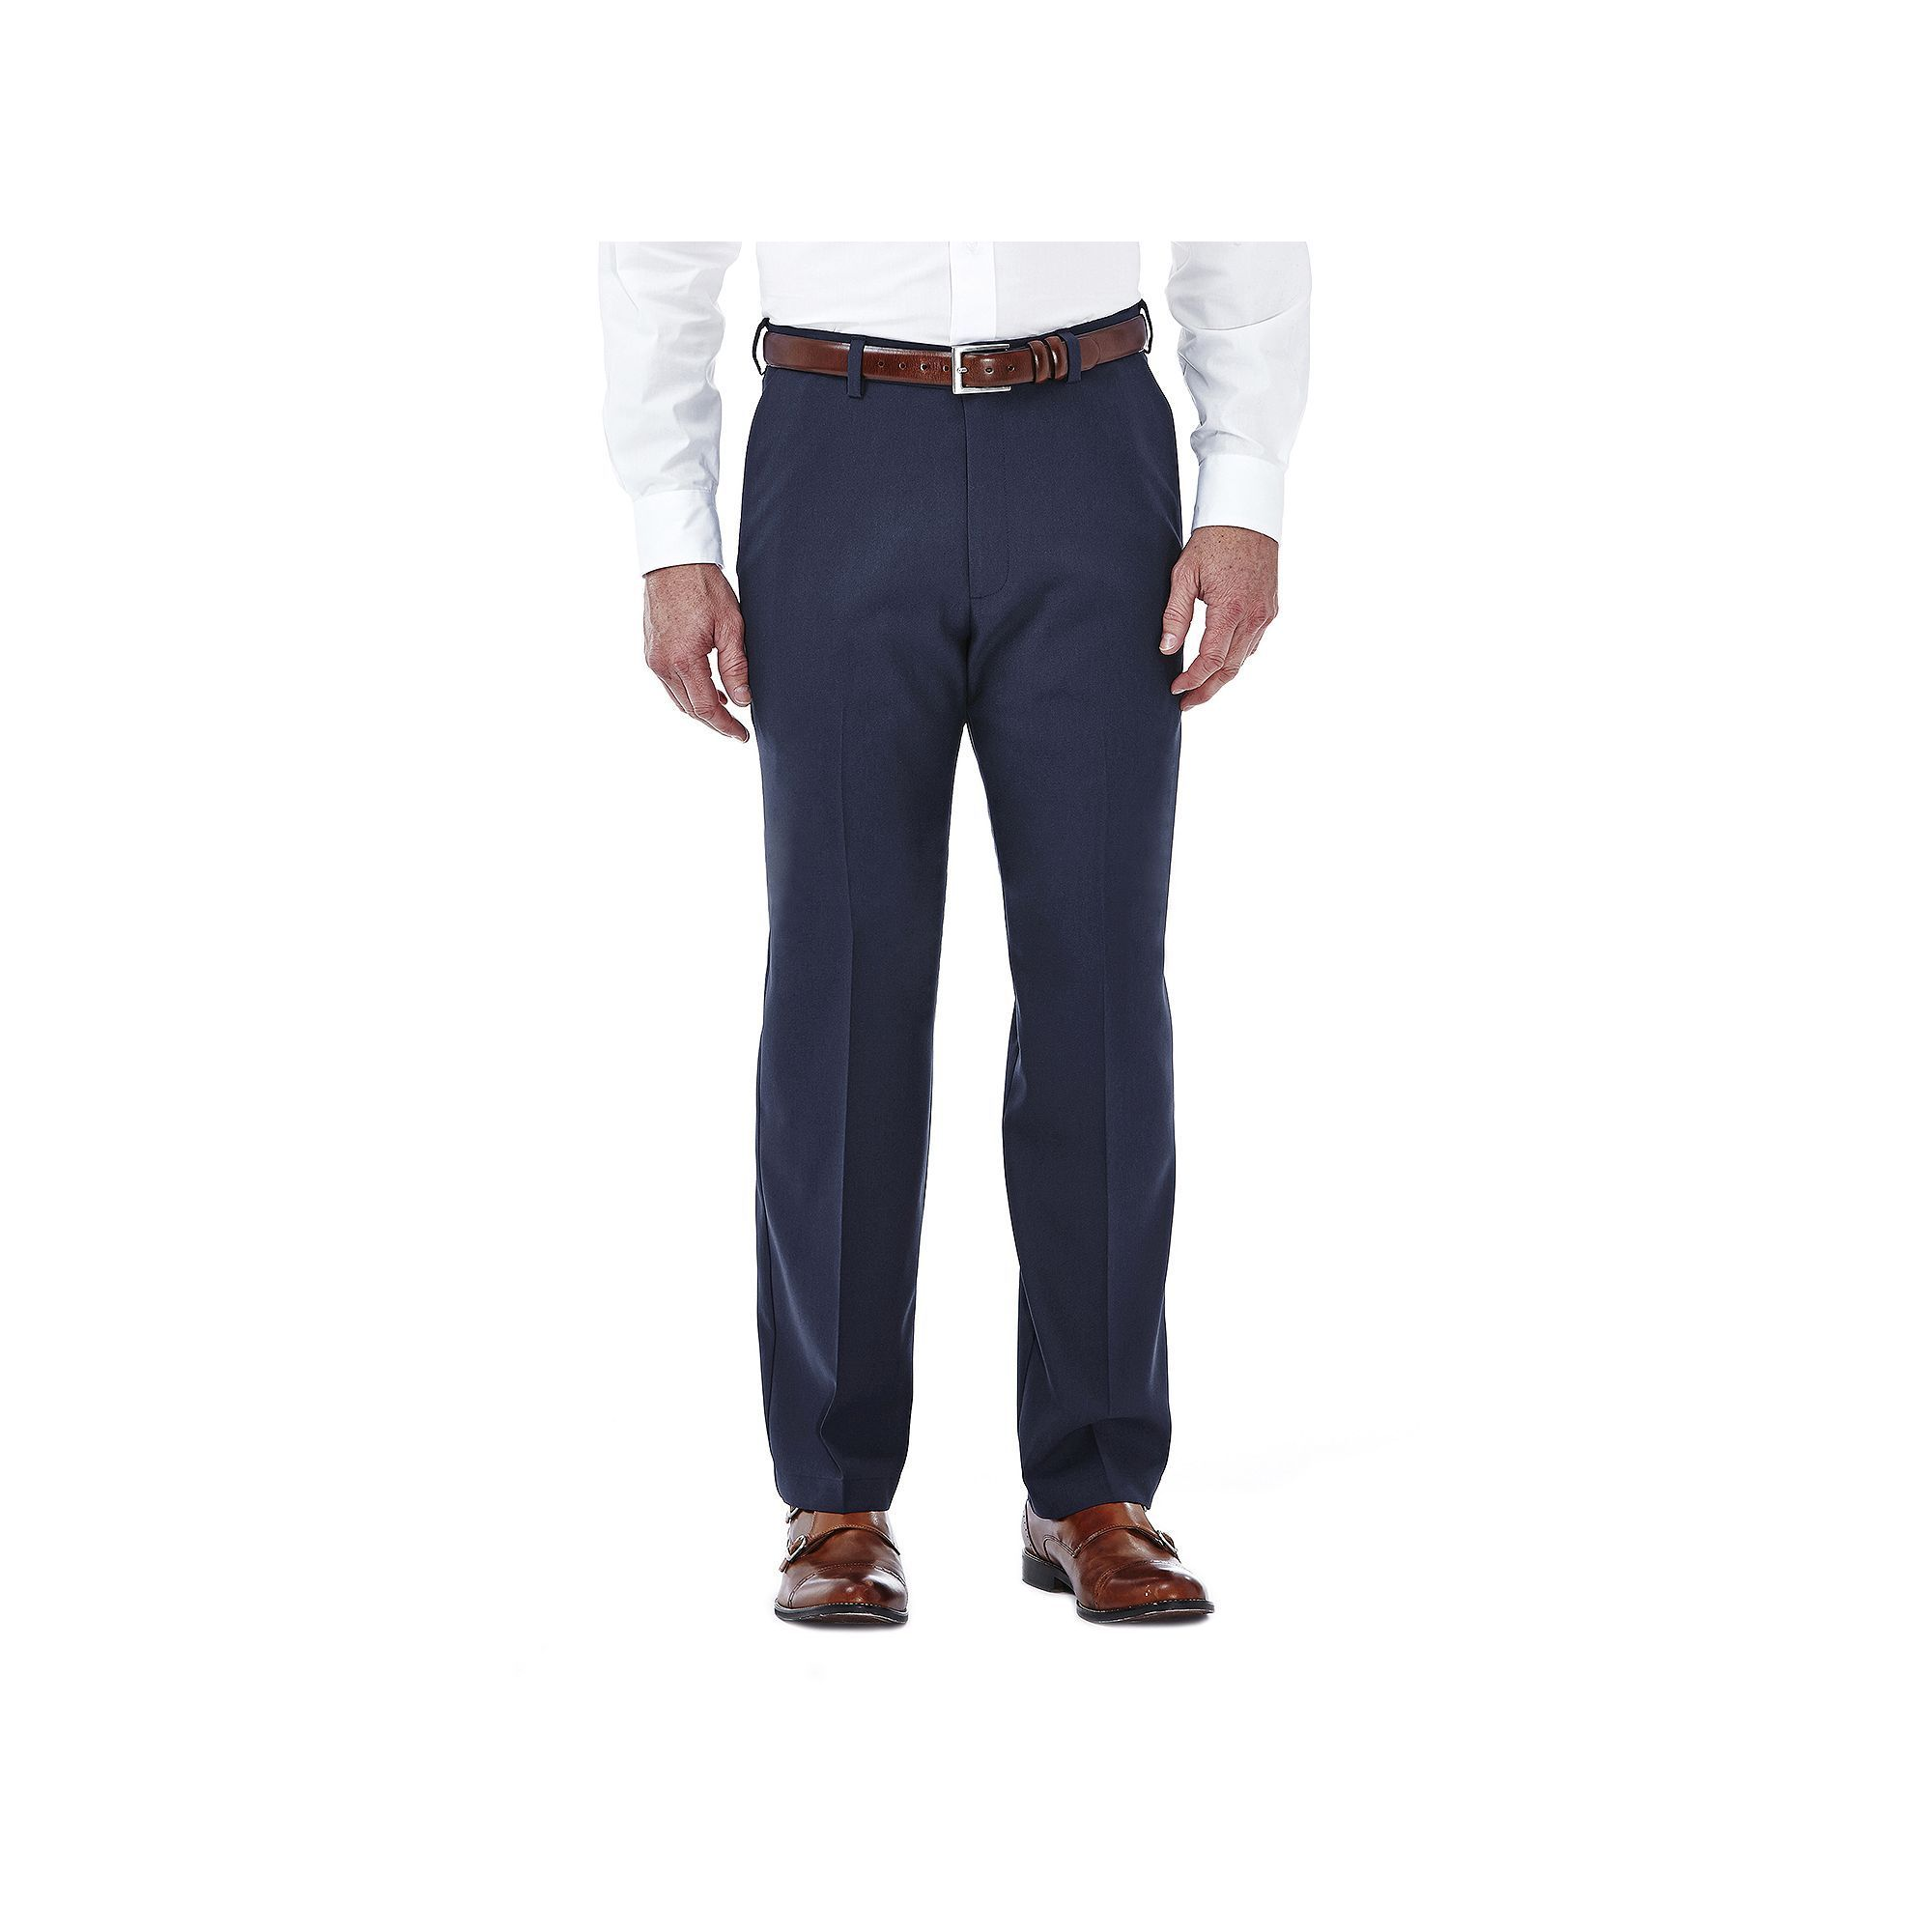 Men's Haggar Cool 18 Stretch Flat-Front Pants, Size: 36X30, Blue (Navy)